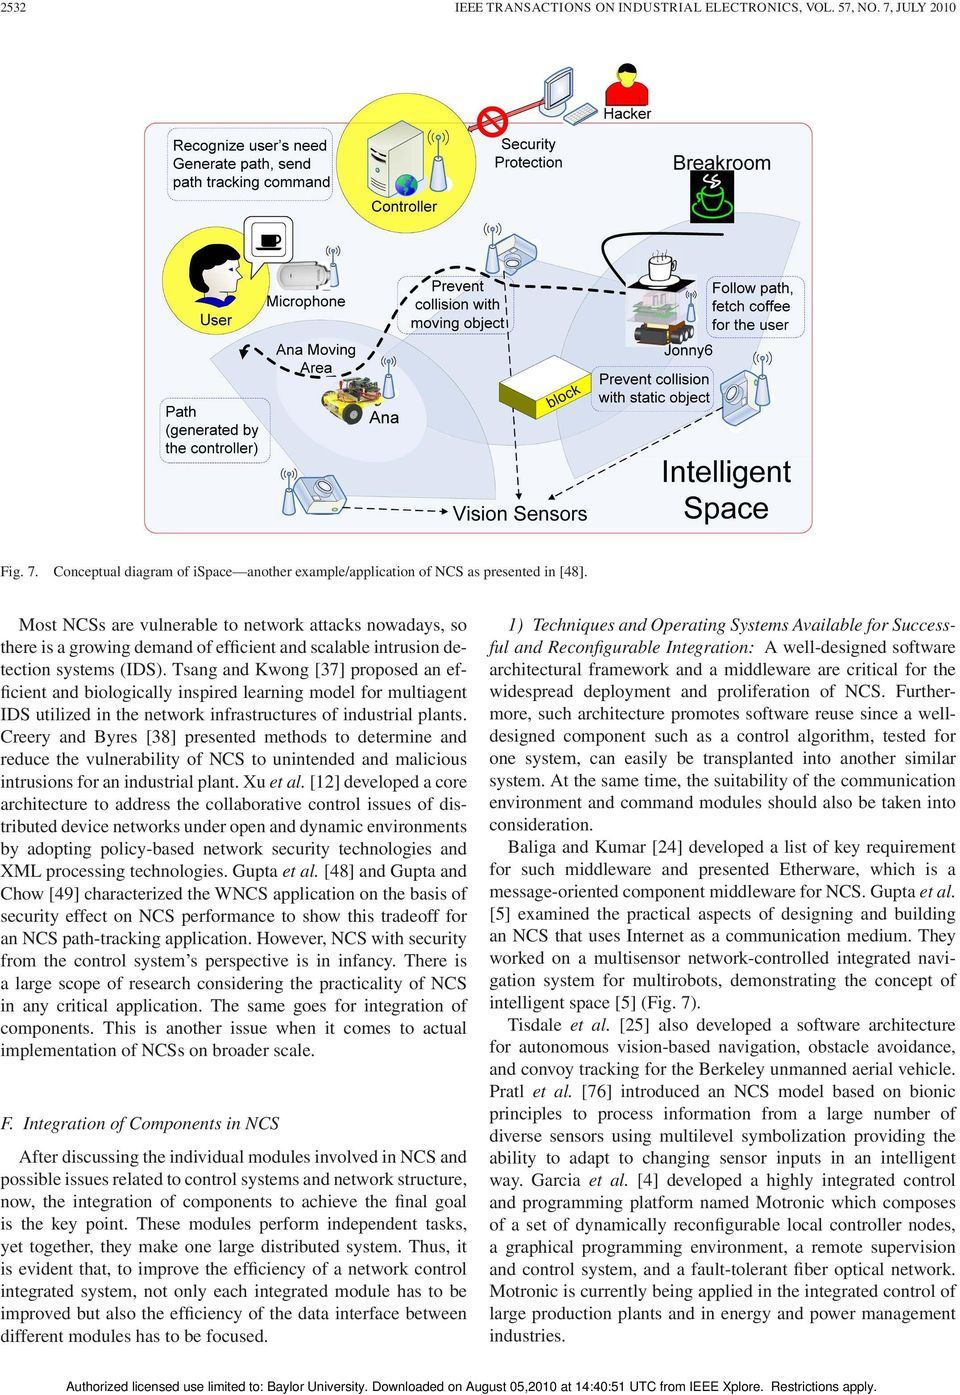 Tsang and Kwong [37] proposed an efficient and biologically inspired learning model for multiagent IDS utilized in the network infrastructures of industrial plants.